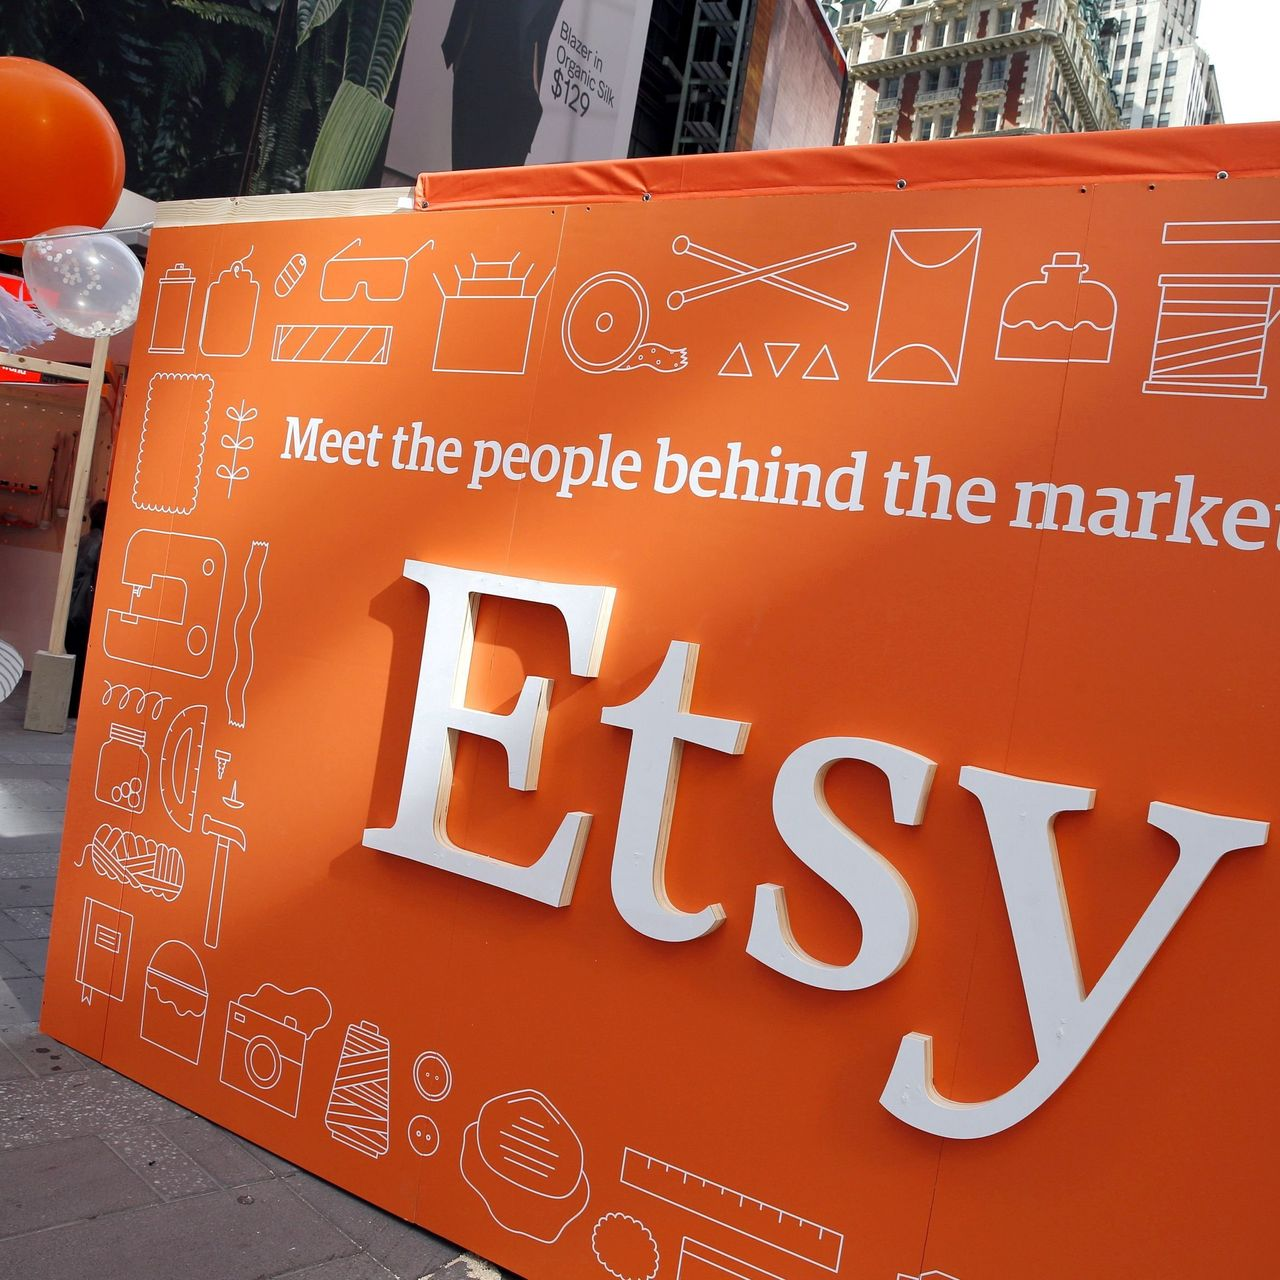 Etsy stock surges on earnings beat and strong guidance